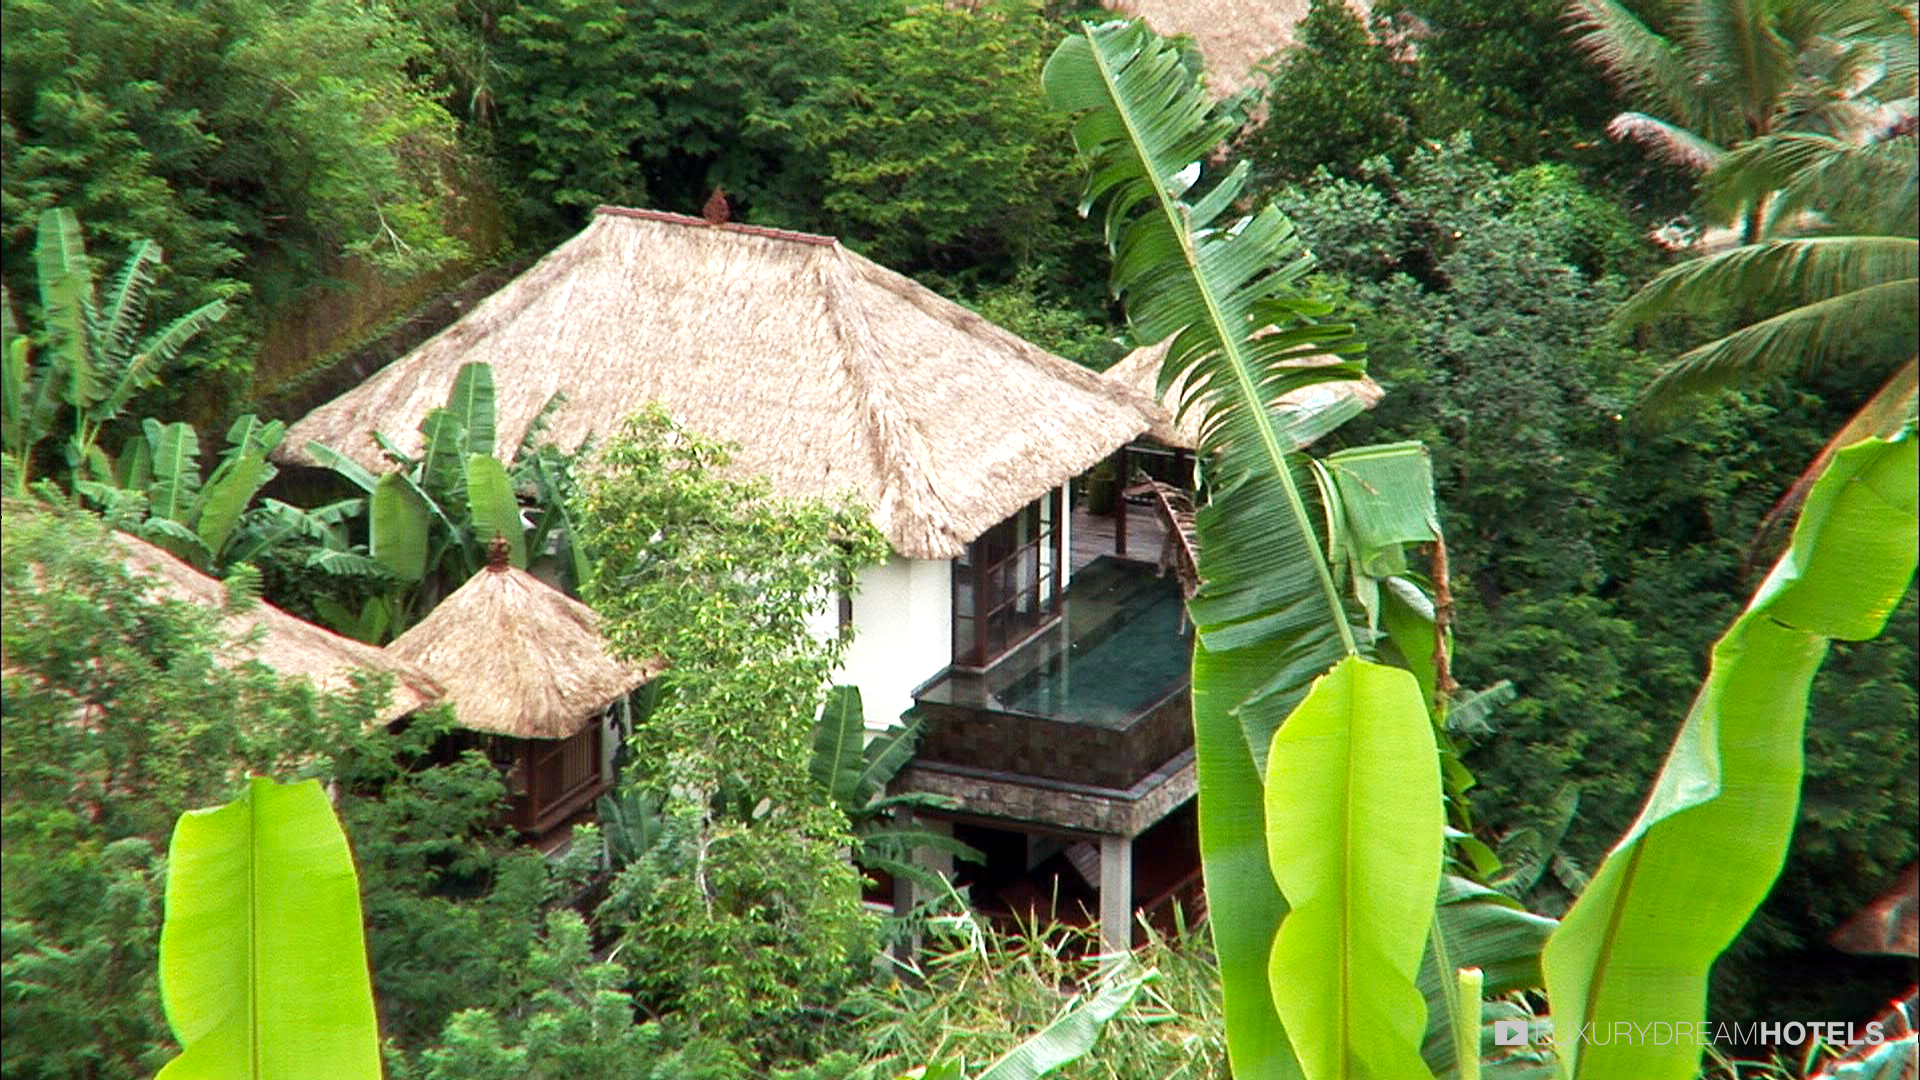 Luxury hotel, Ubud Hanging Gardens, Bali, Indonesia - Luxury Dream ...